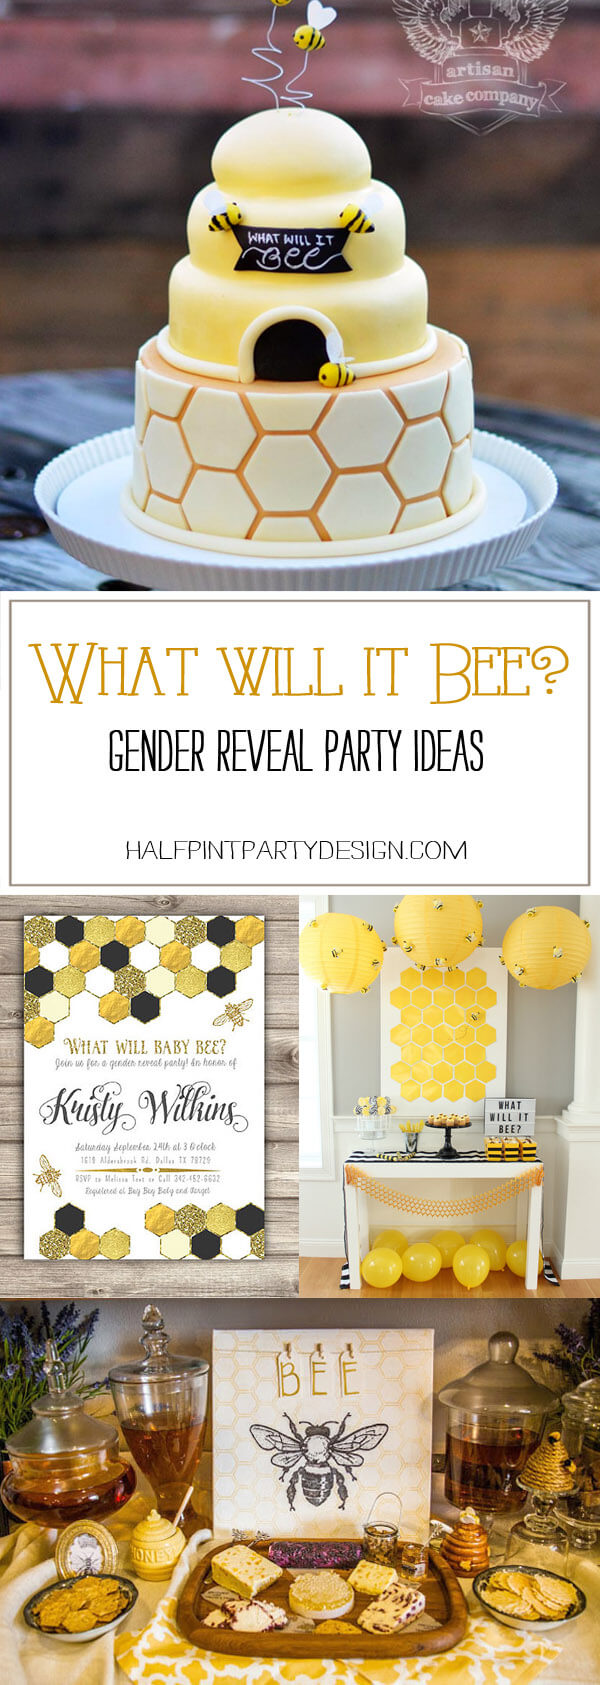 What Will it Bee? Gender Reveal Party Ideas - Halfpint Party Design